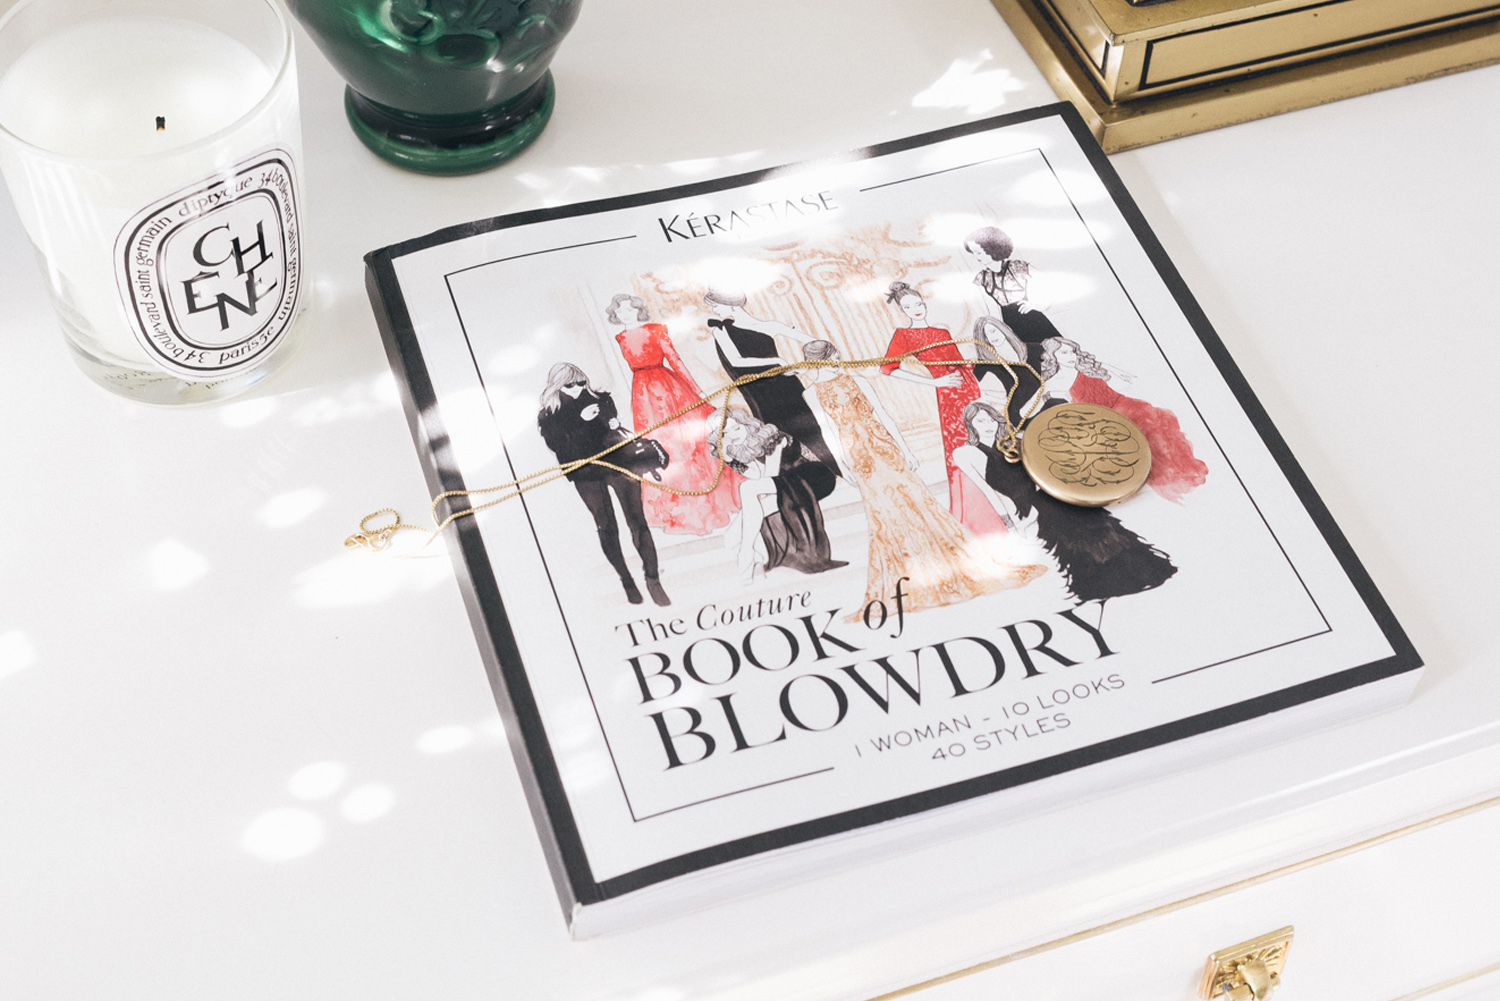 Kérastase Book of Blowdry - To promote the excellent styling balm L'Incroyable Blowdry, we crafted copy for a 140-page illustrated print book celebrating the transformational power of different blowdry techniques, to amuse and inspire clients in salons around the world. Featuring 10 style archetypes and 40 tutorials, the exquisite print creation captures the expressive power of hair, beautifully.